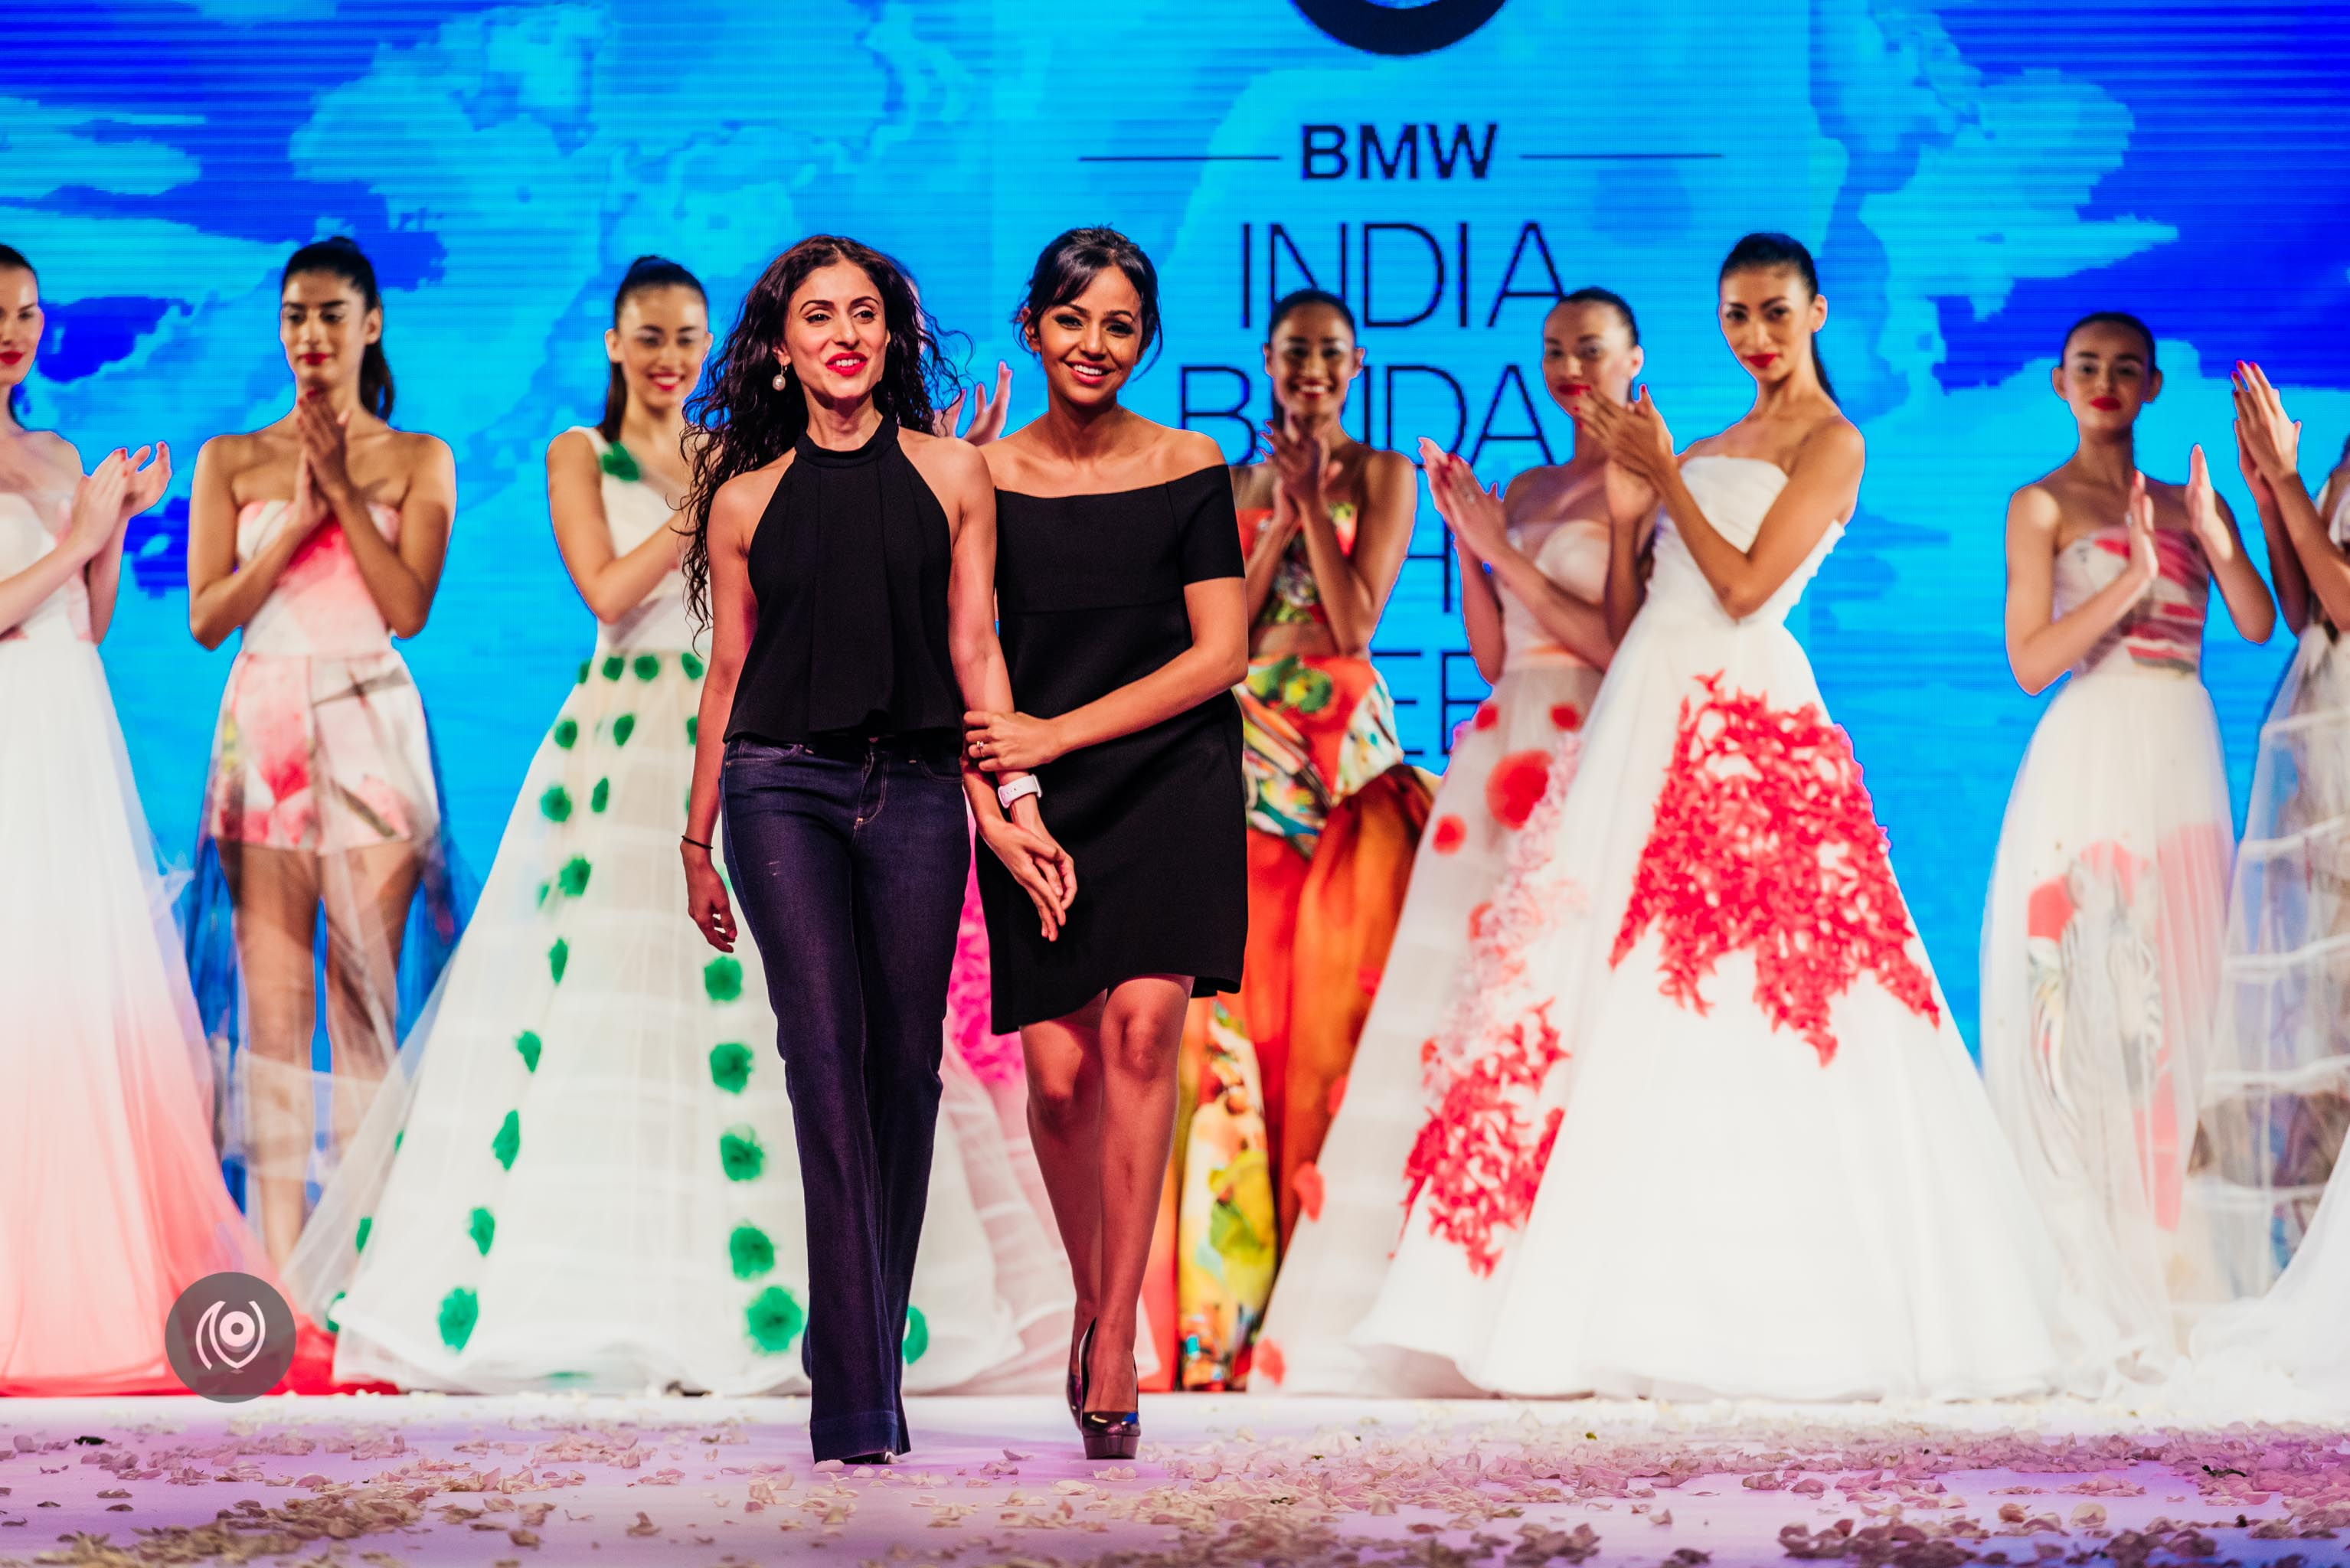 #SwarovskiCrystals Gauri and Nainika, BMW India Bridal Fashion Week, #BMWIBFW, Naina.co Luxury & Lifestyle, Photographer Storyteller, Blogger.